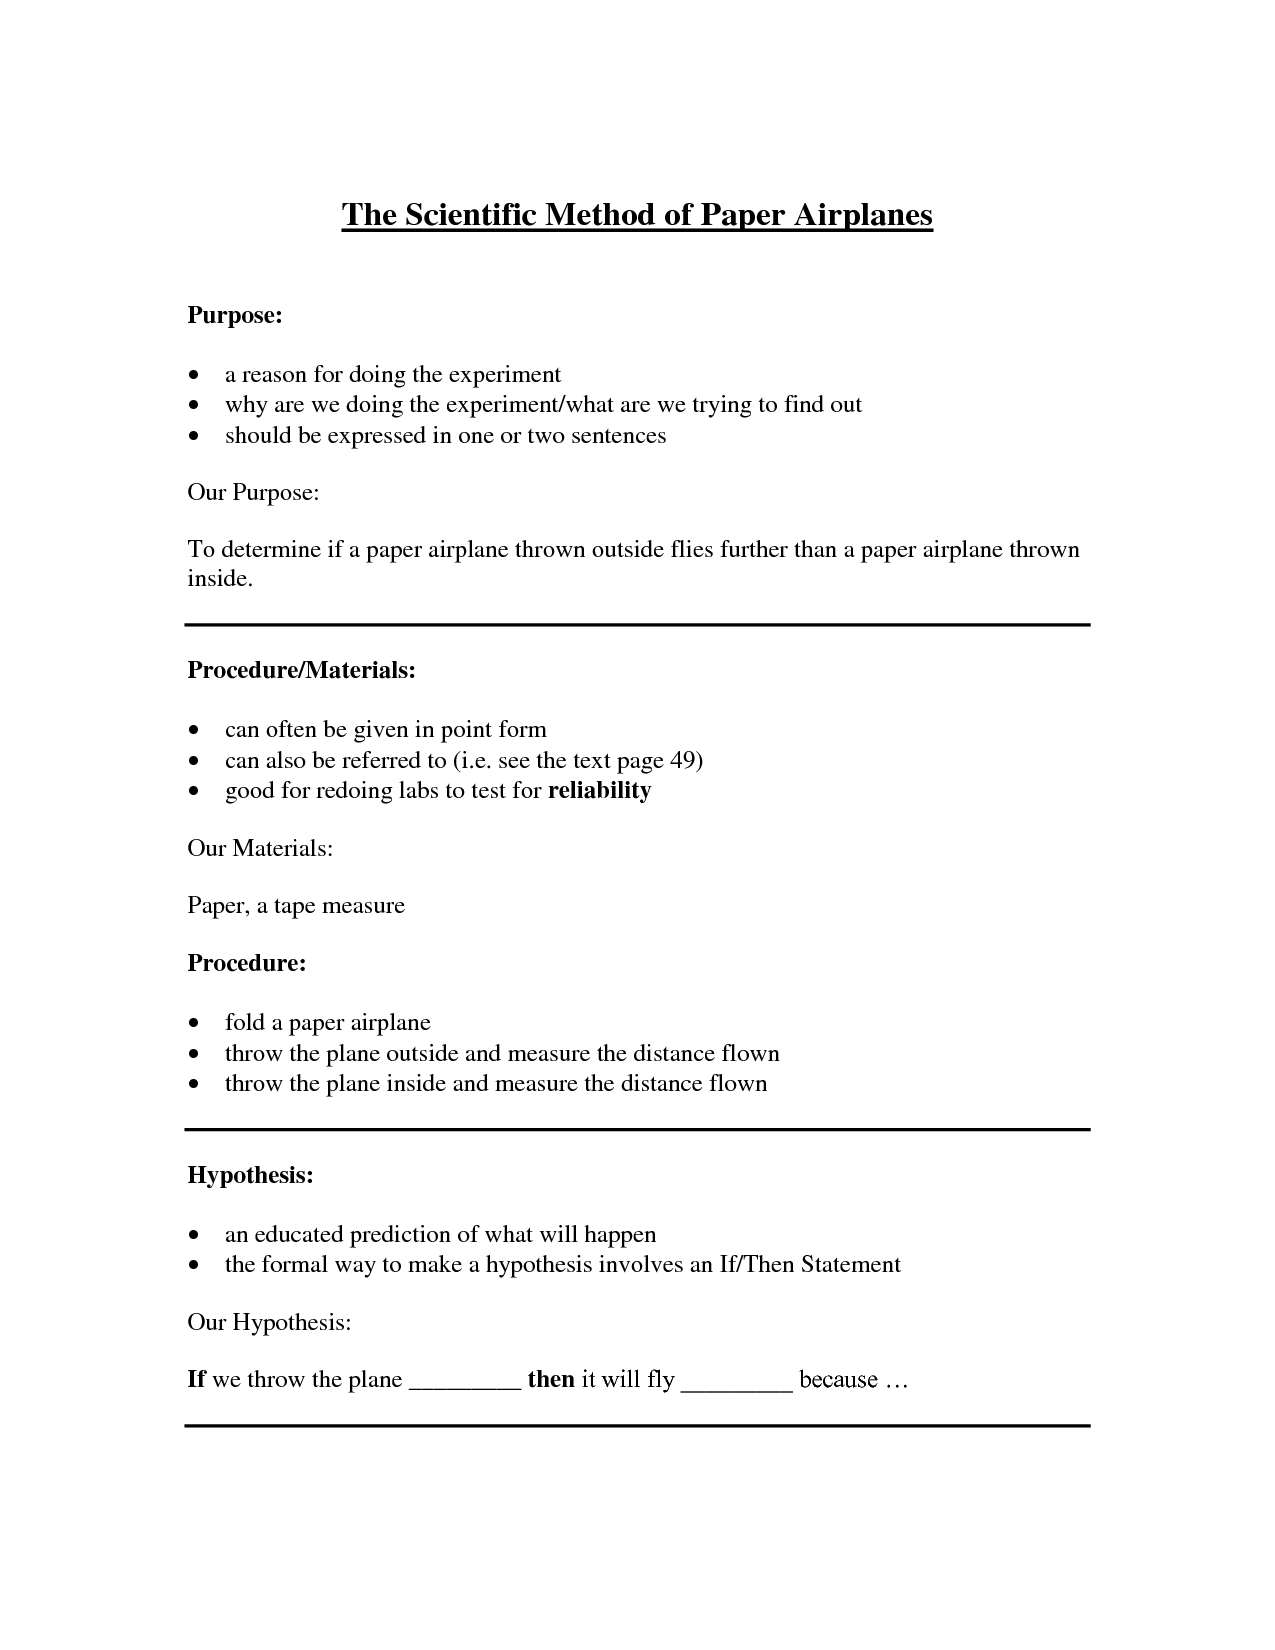 scientific method essay Free scientific method essays and papers 123helpmecom the scientific  method refers to group of steps that investigate phenomena, acquiring new  knowledge.